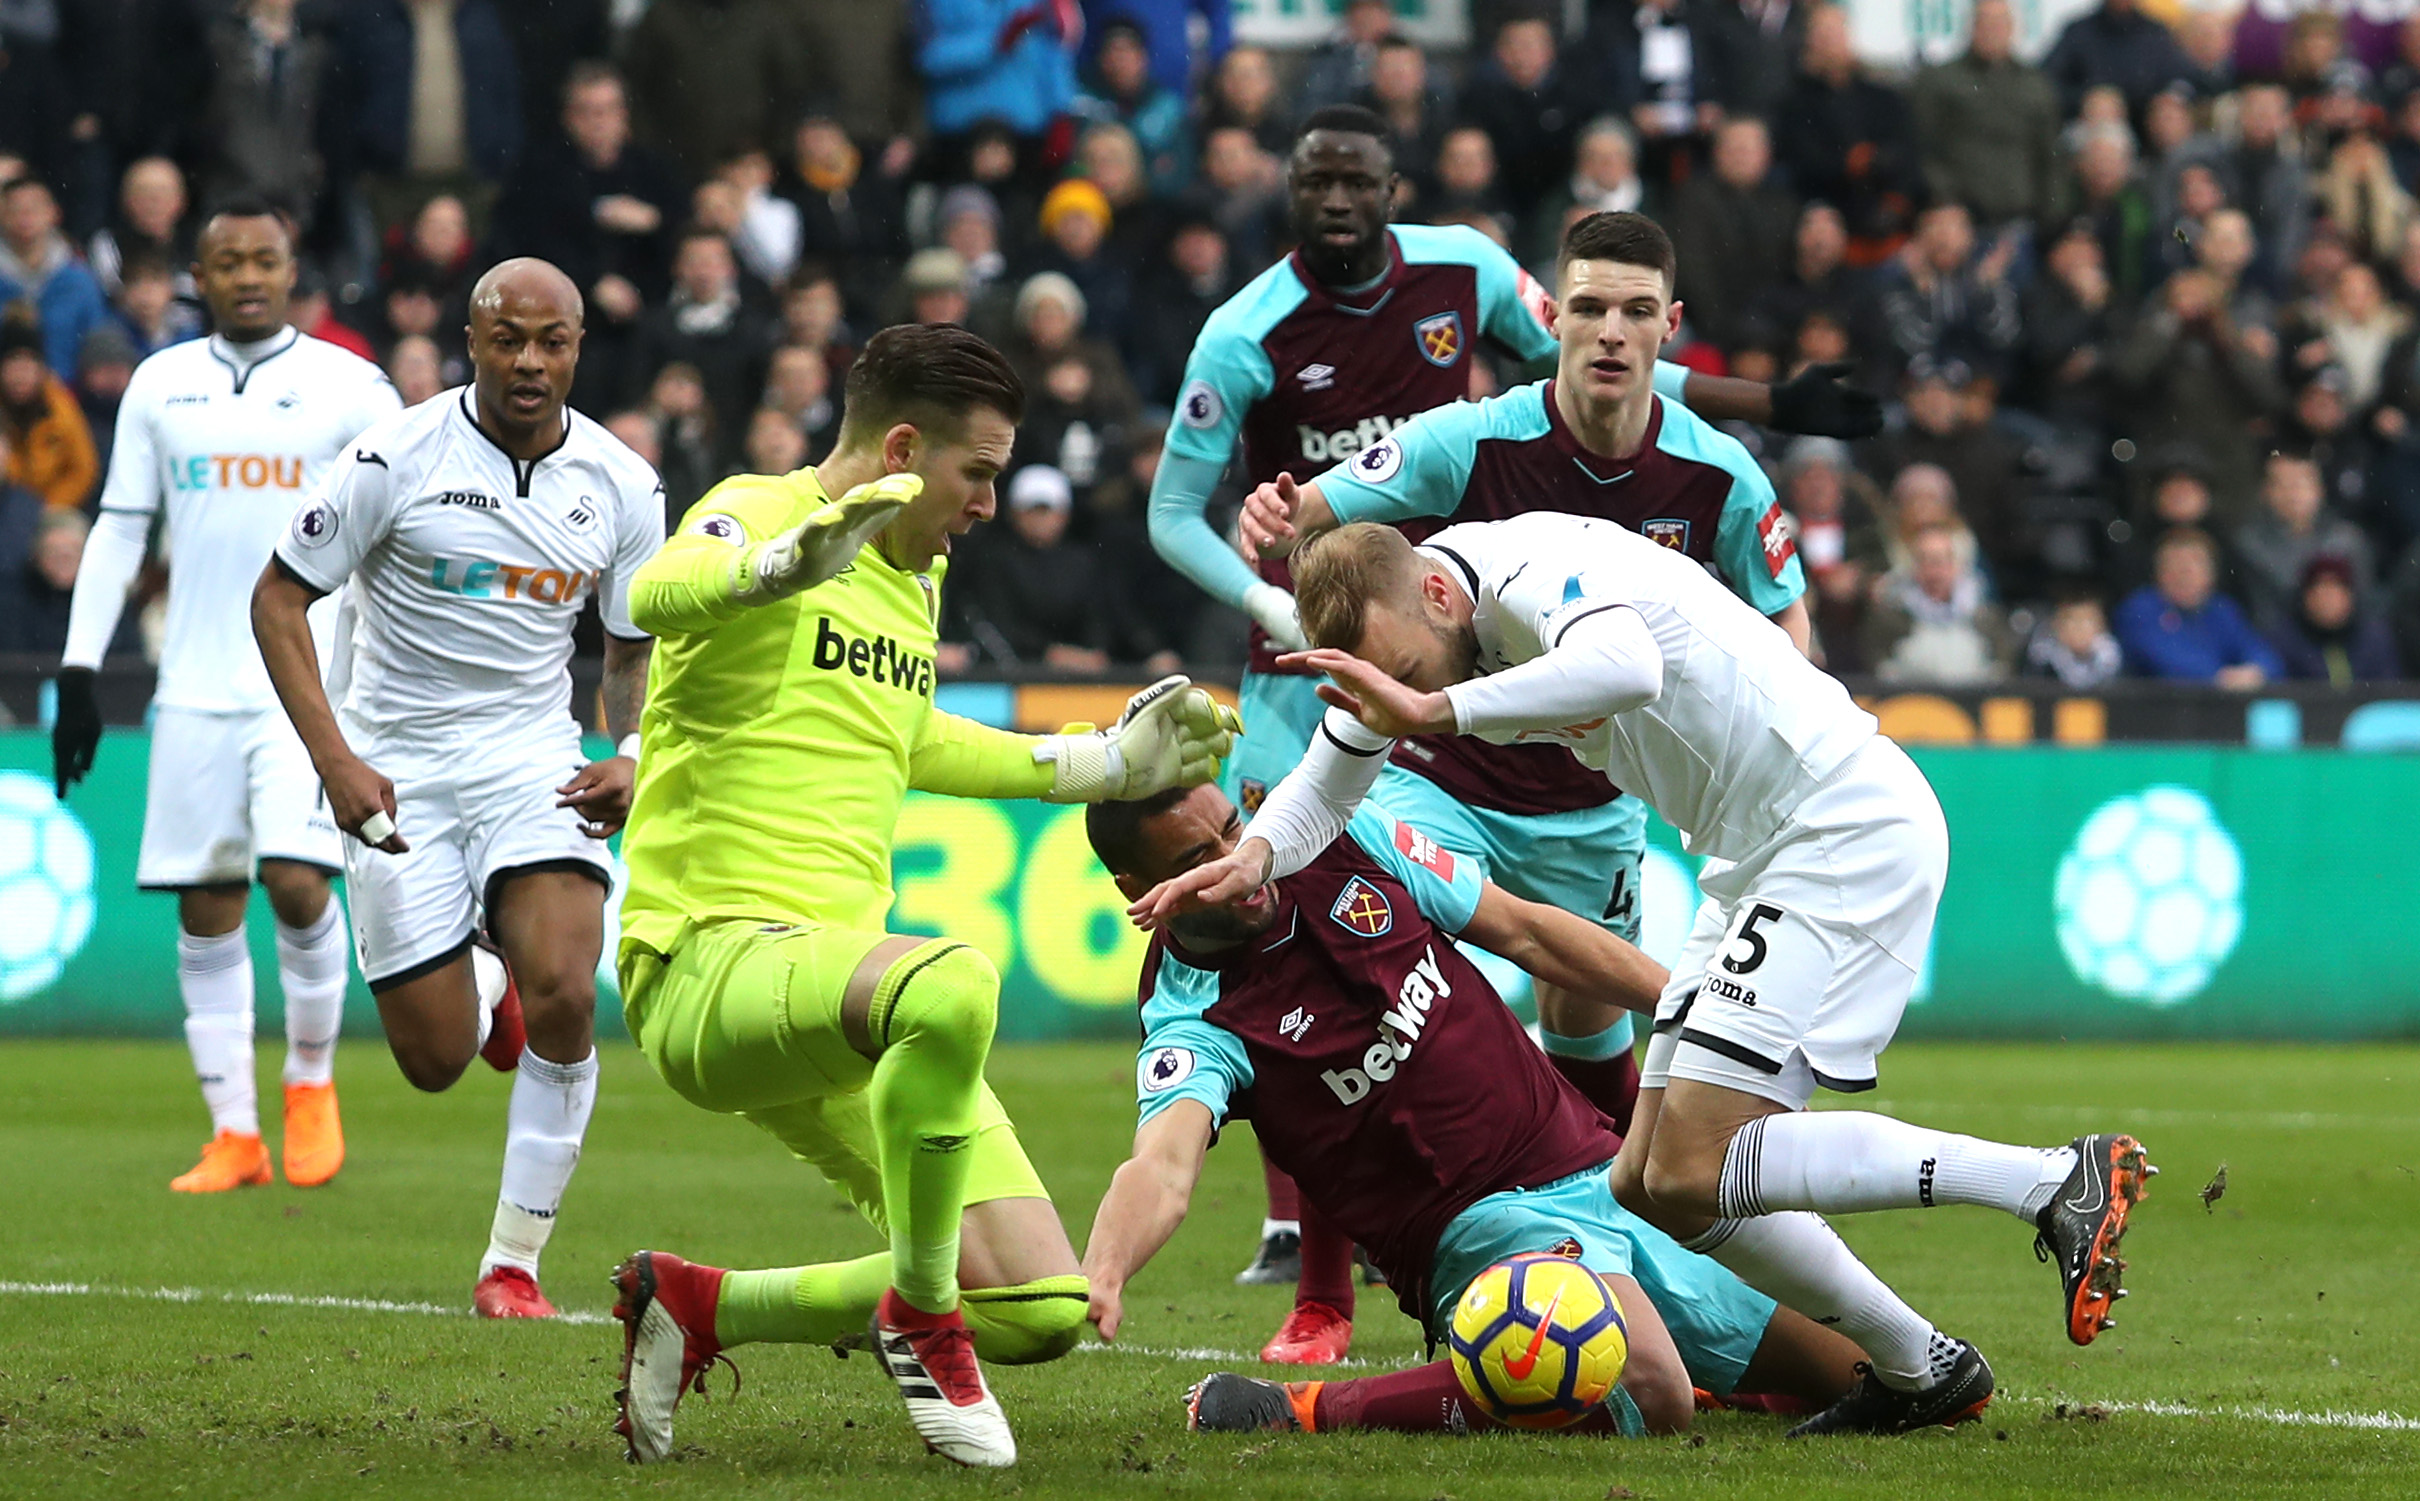 West Ham v Burnley: Hammers can grab vital win in tight match